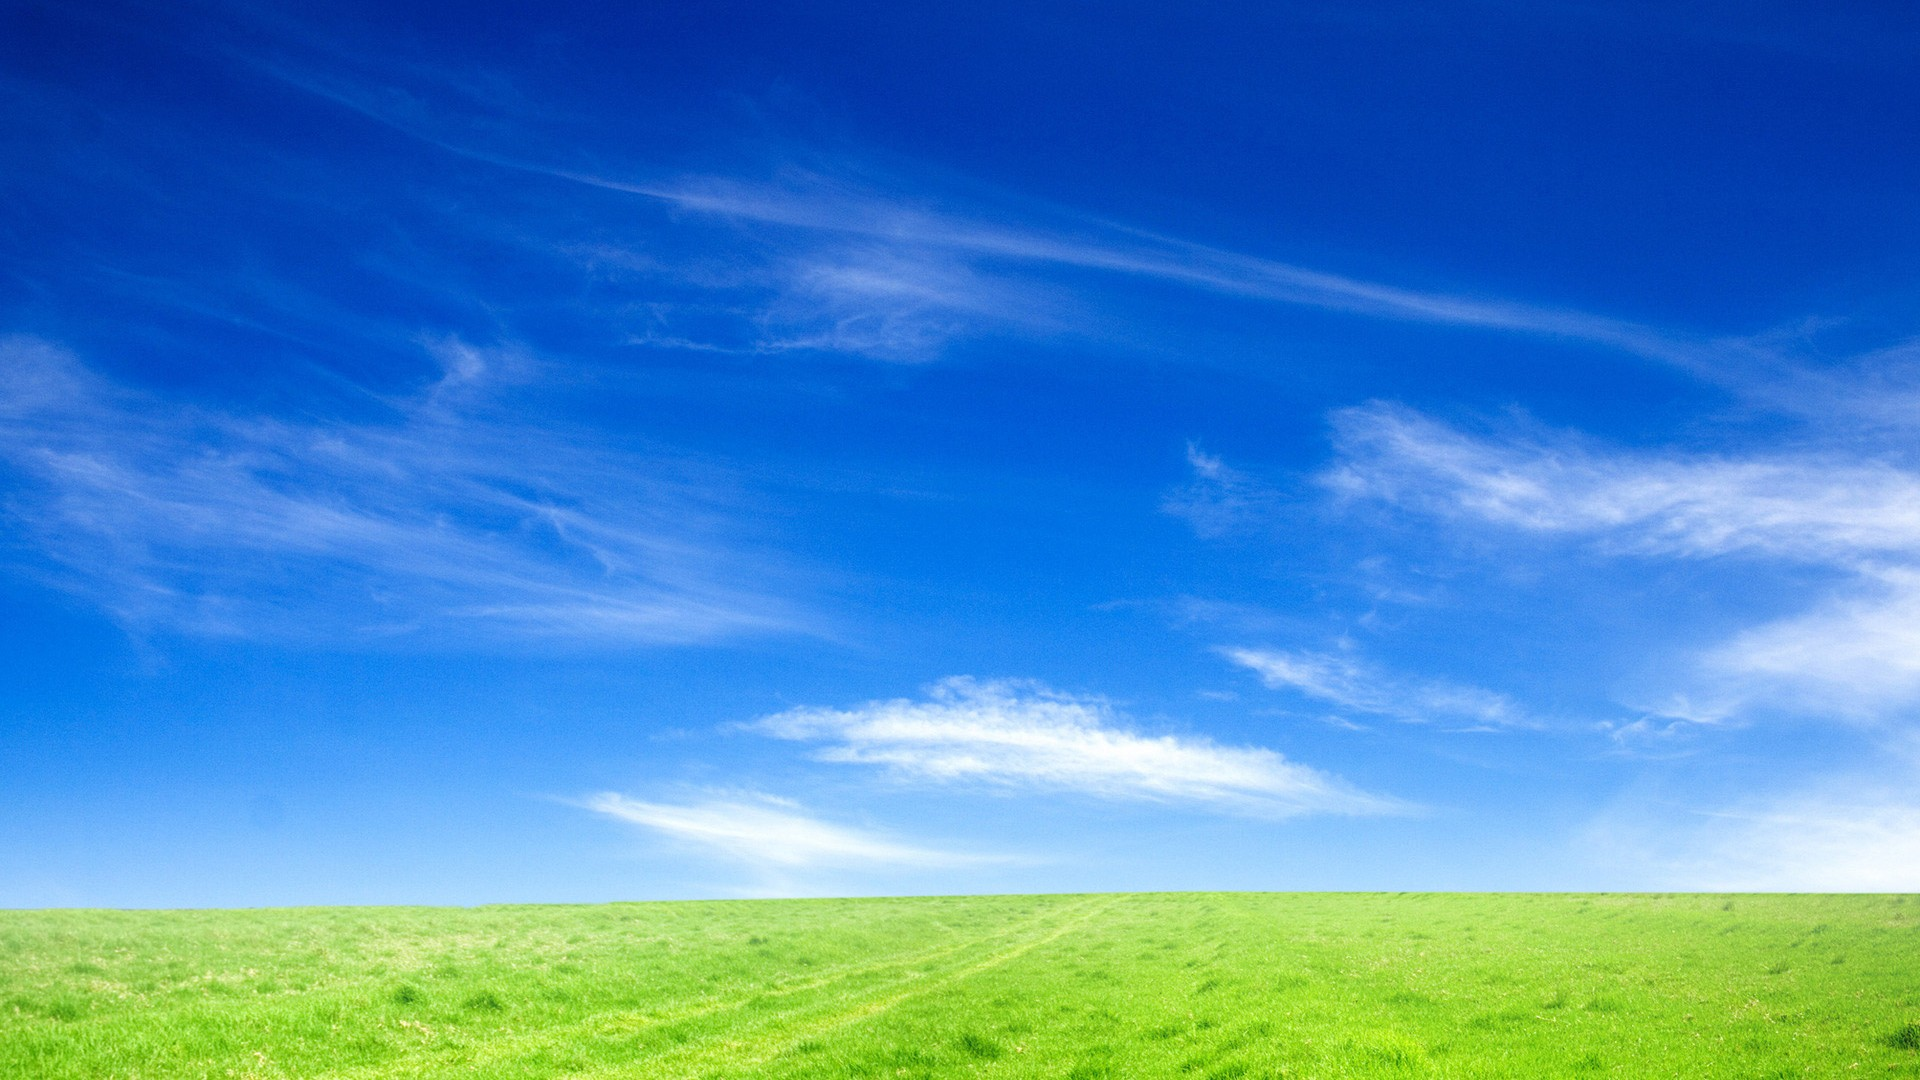 Ultra Hd 4k Wallpapers For Iphone Blue Sky And Green Grass Wallpapers Hd Wallpapers Id